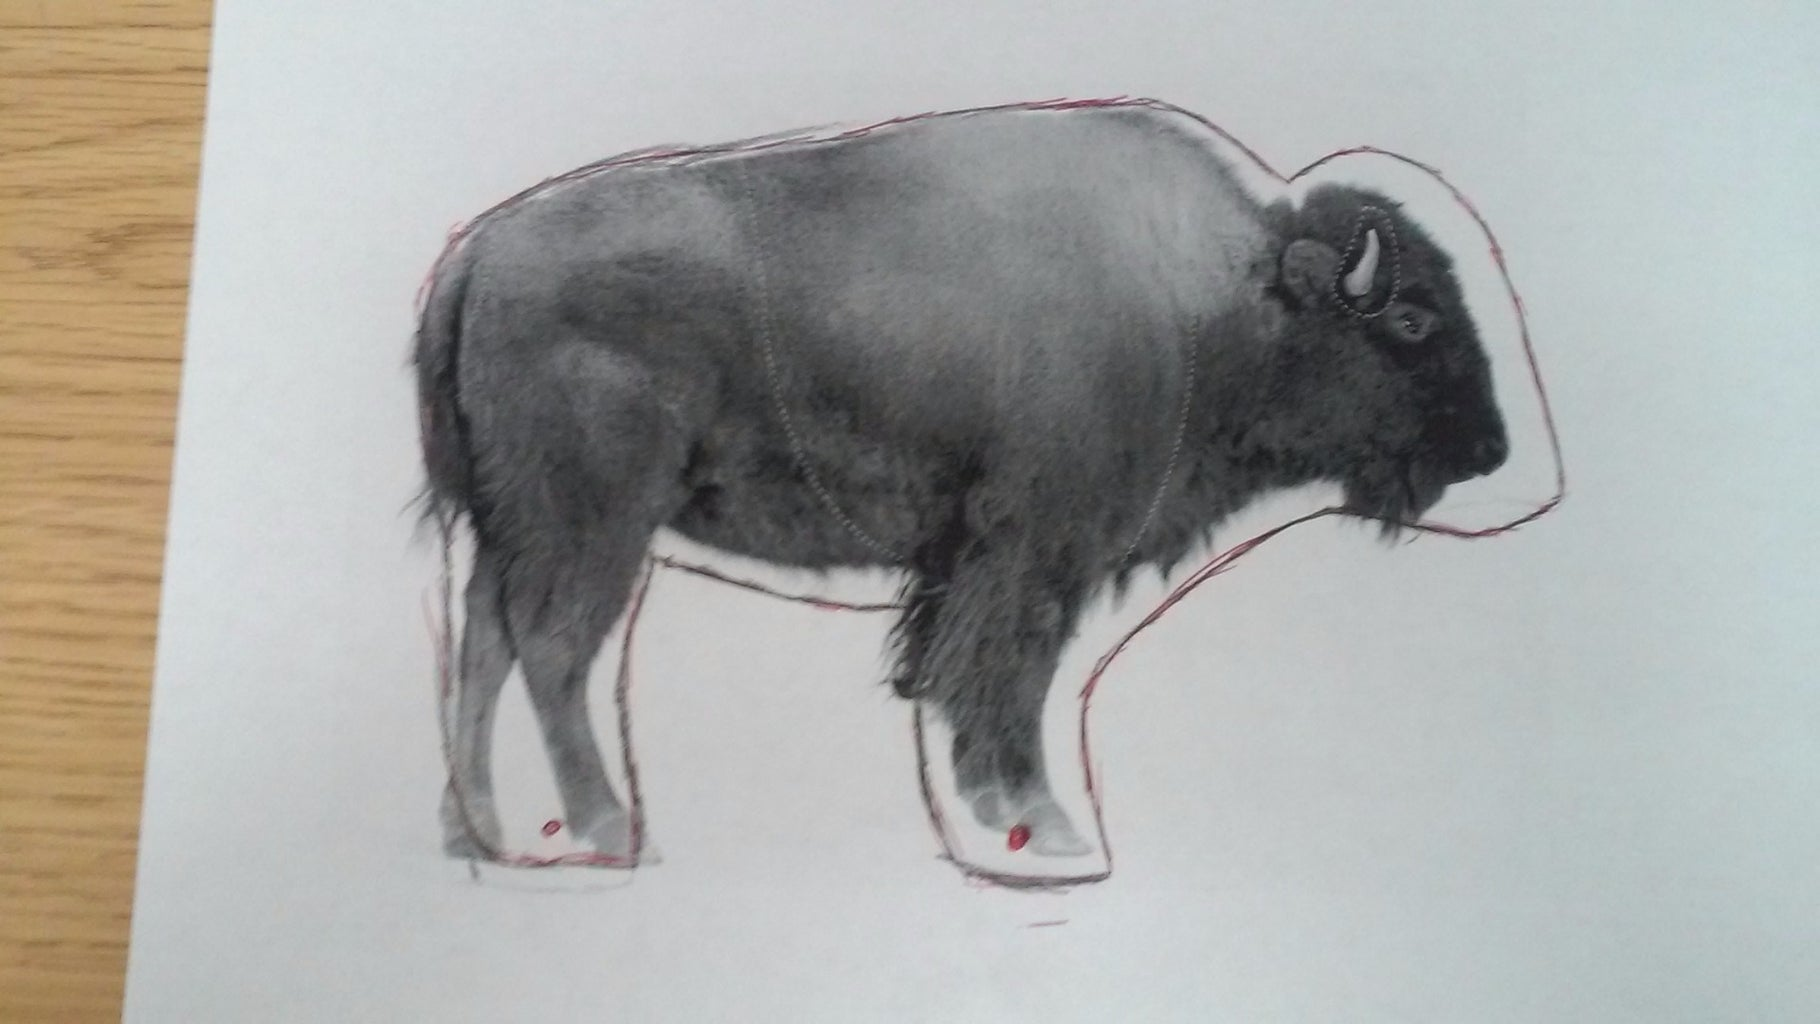 Find a Picture of a Buffalo